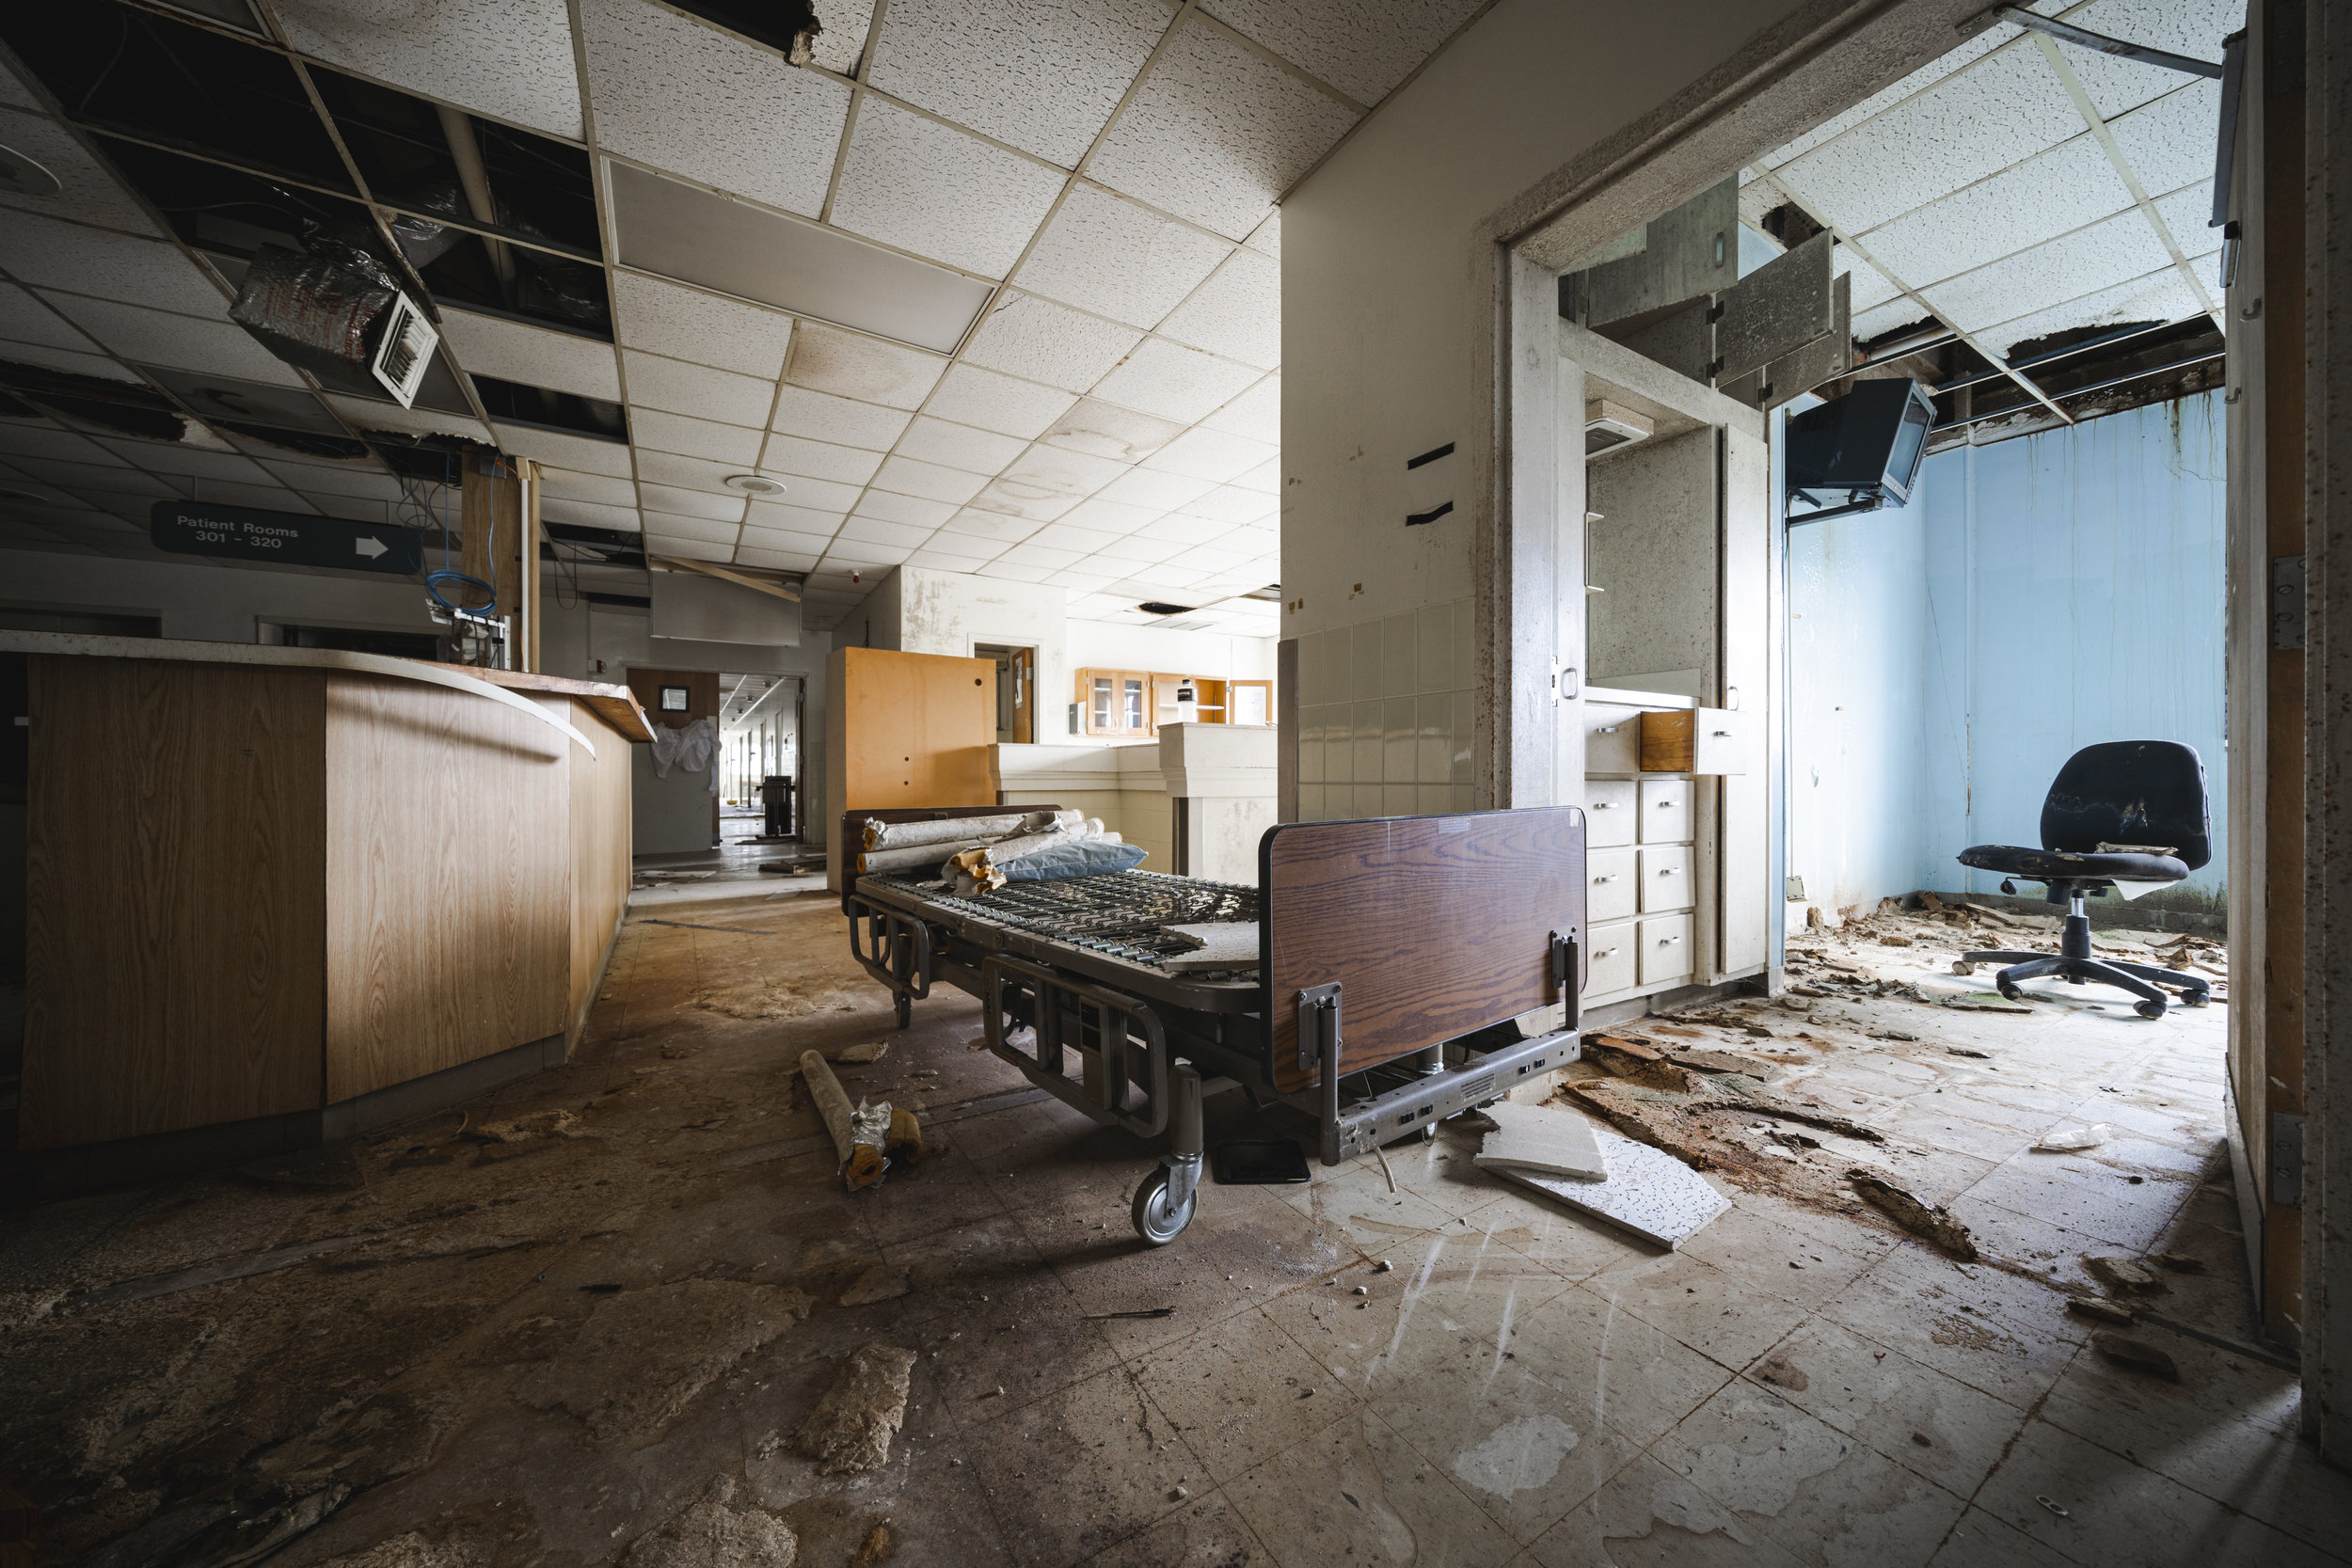 Hospital Bed in Hallway